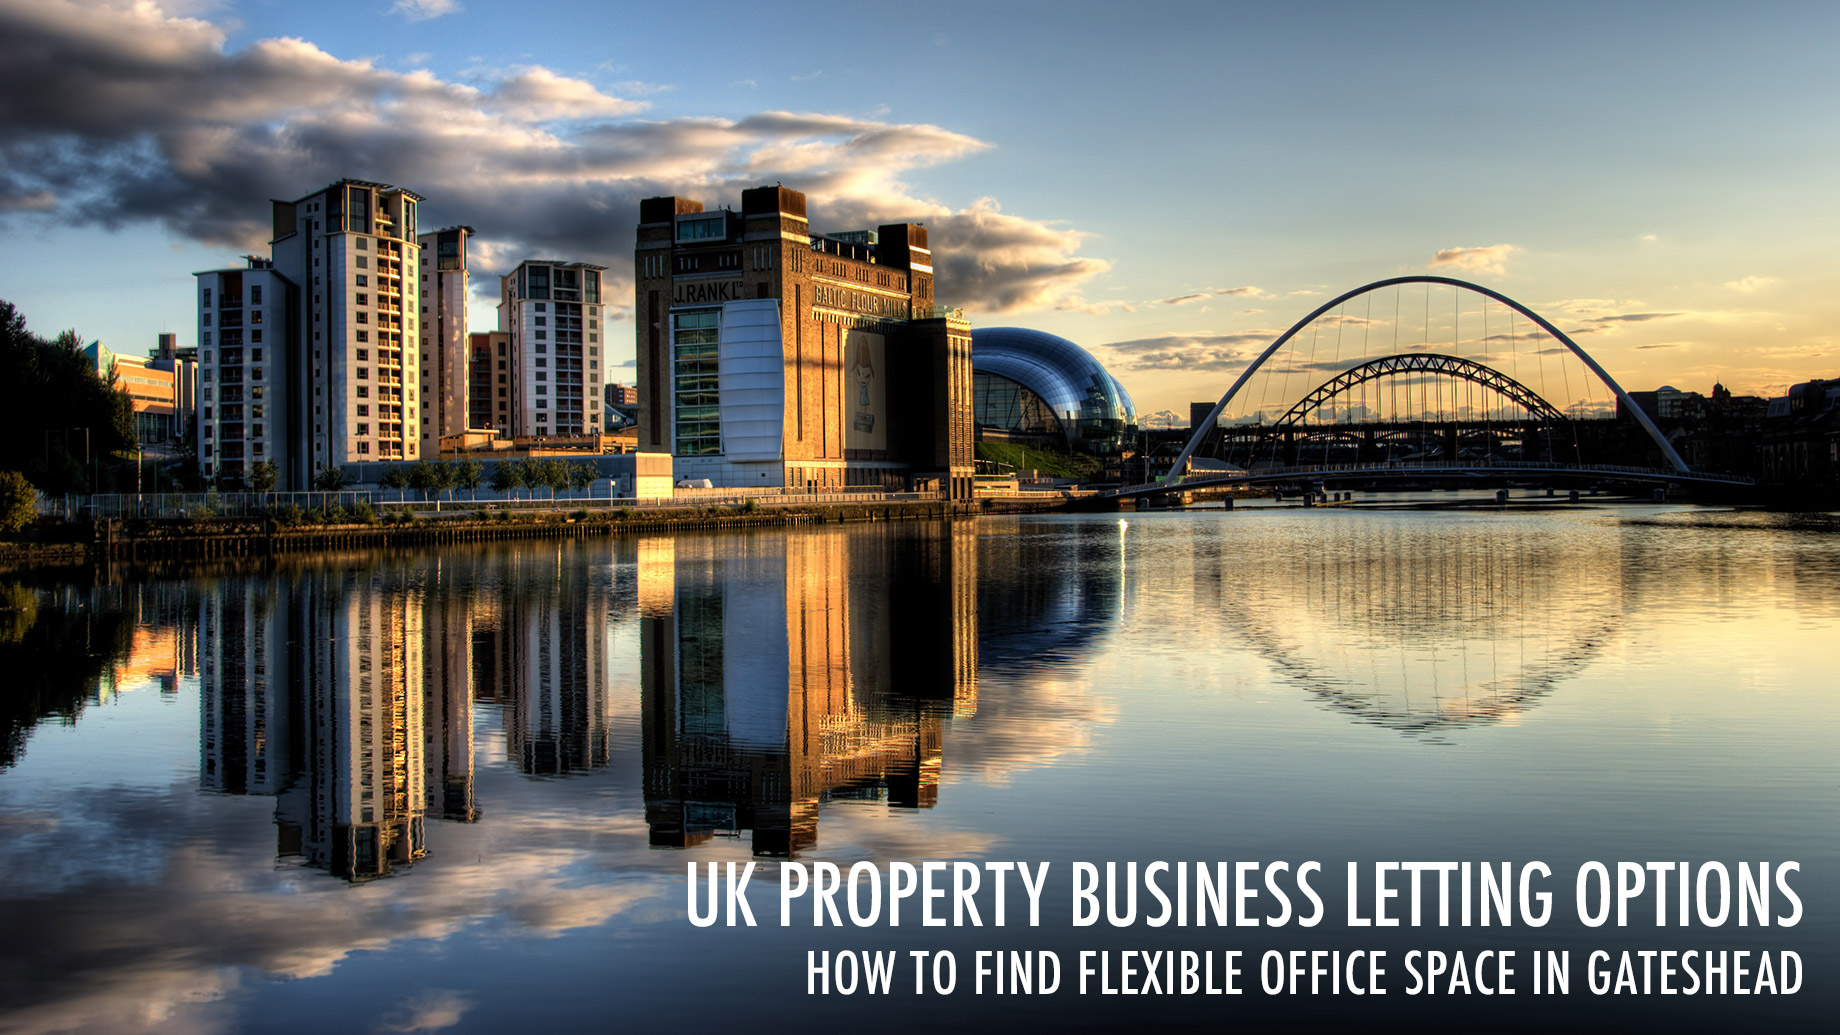 UK Property Business Letting Options - How To Find Flexible Office Space In Gateshead